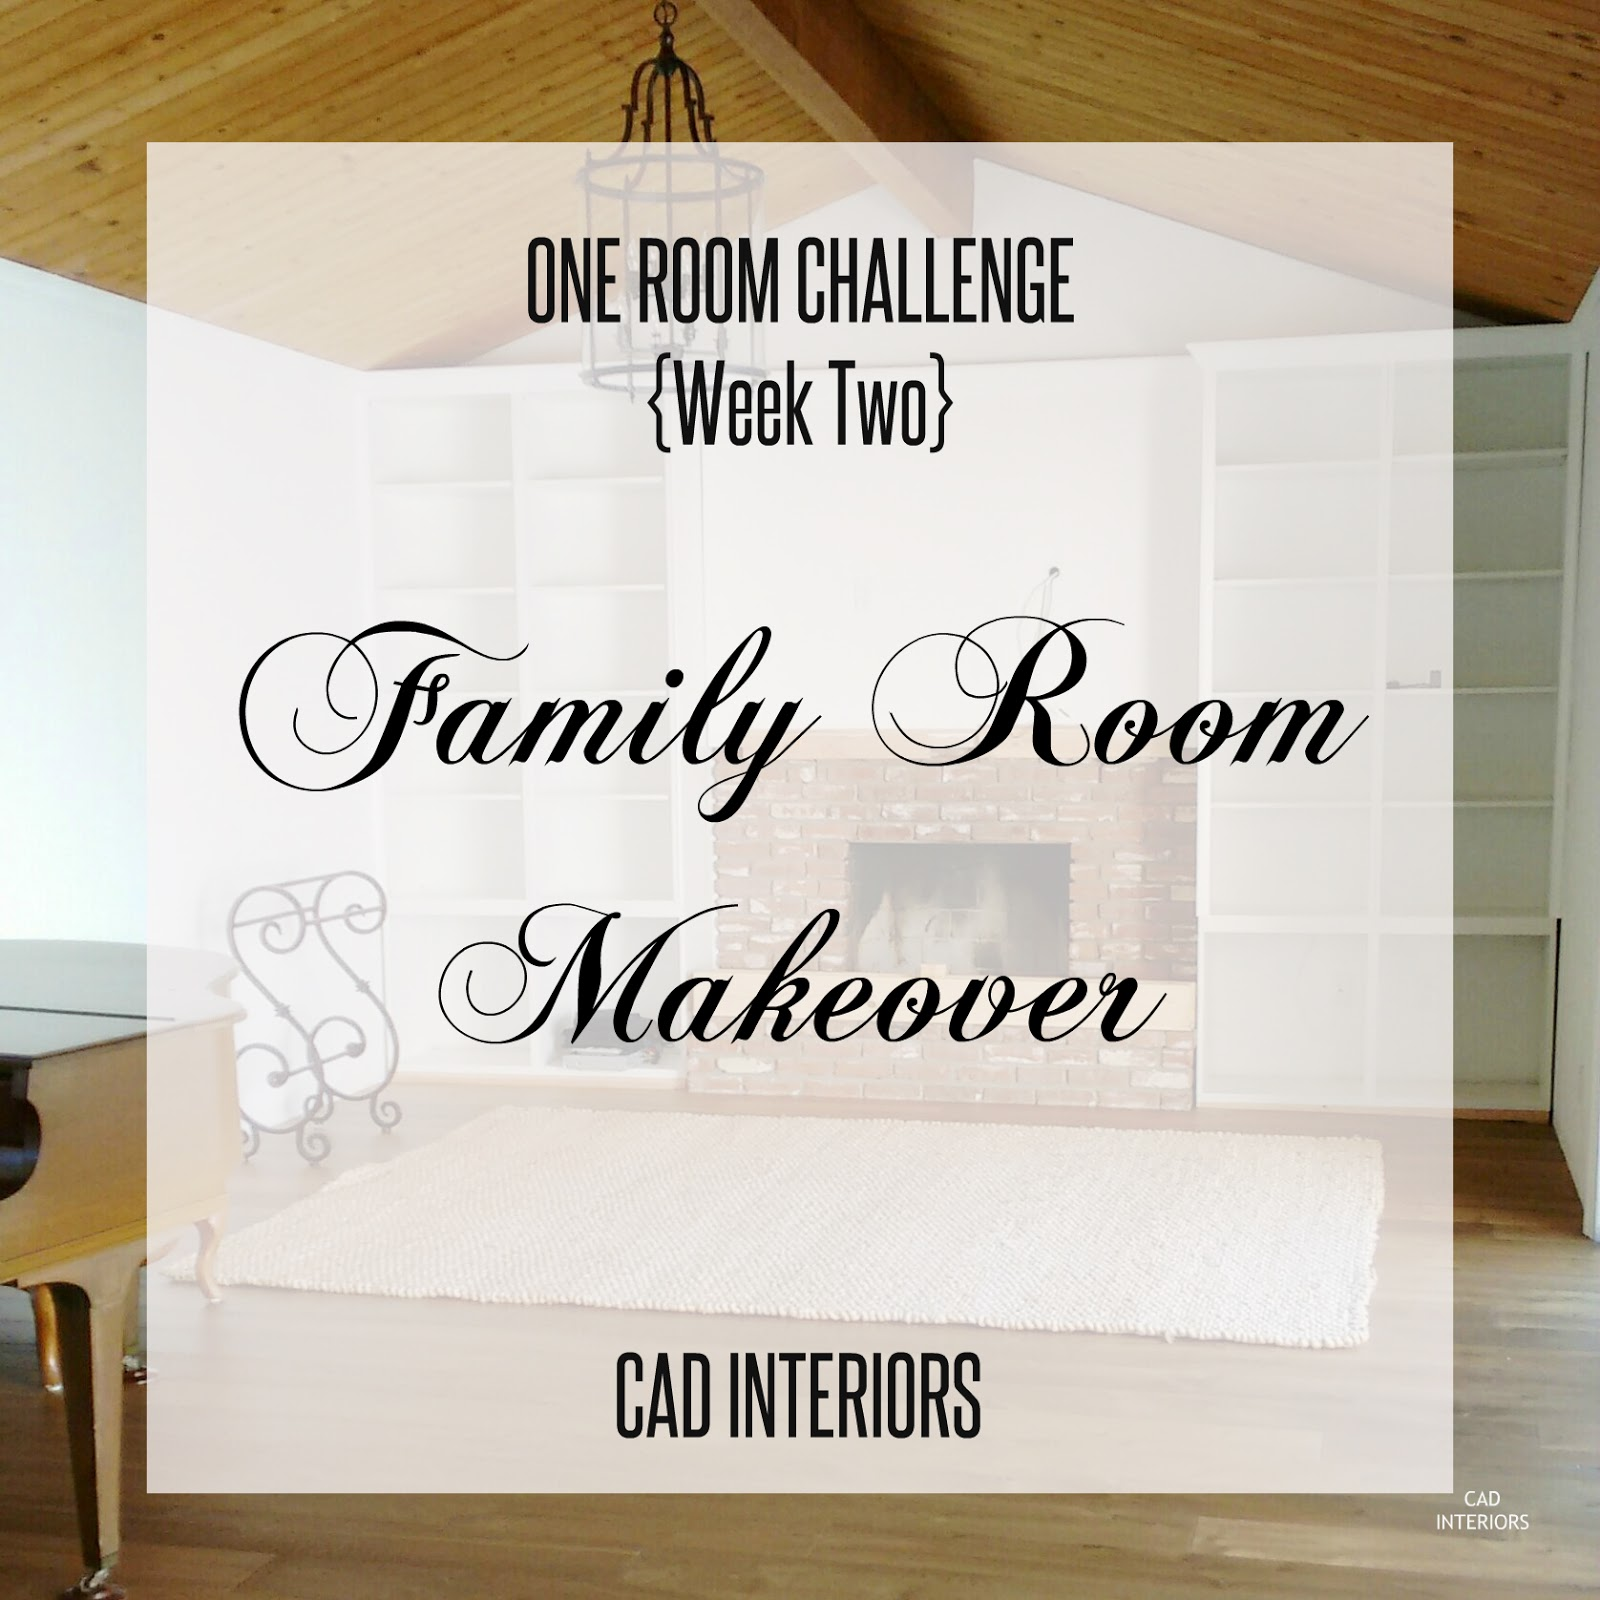 One Room Challenge family room interior design